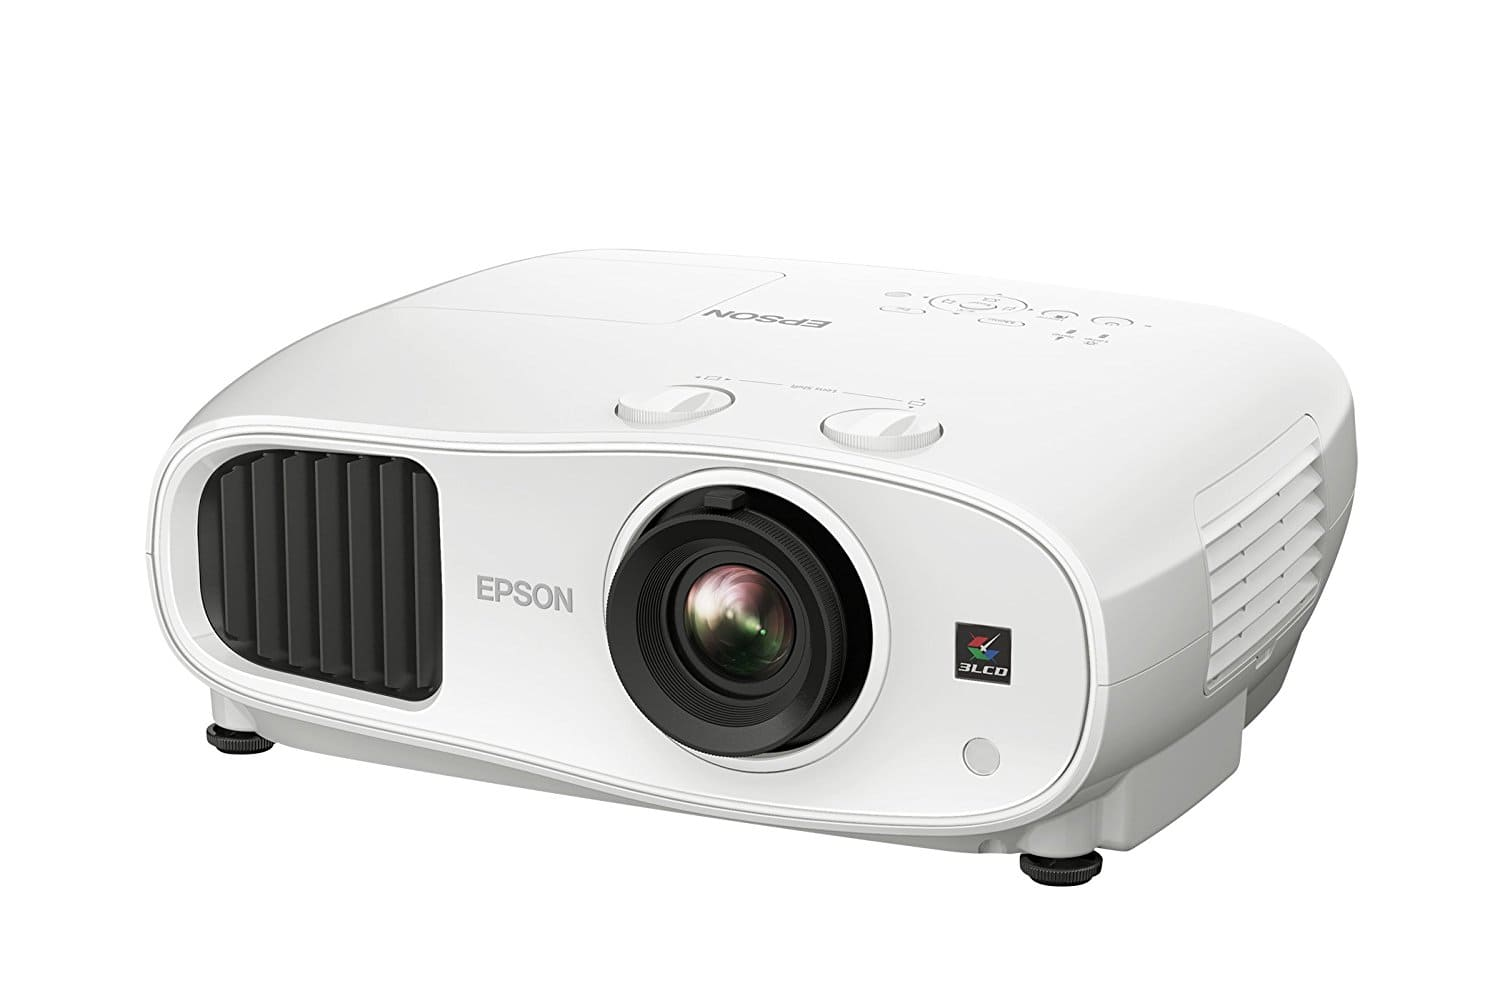 Home Cinema 3100 Full HD 3LCD Home Theater Projector $849+Free Shipping